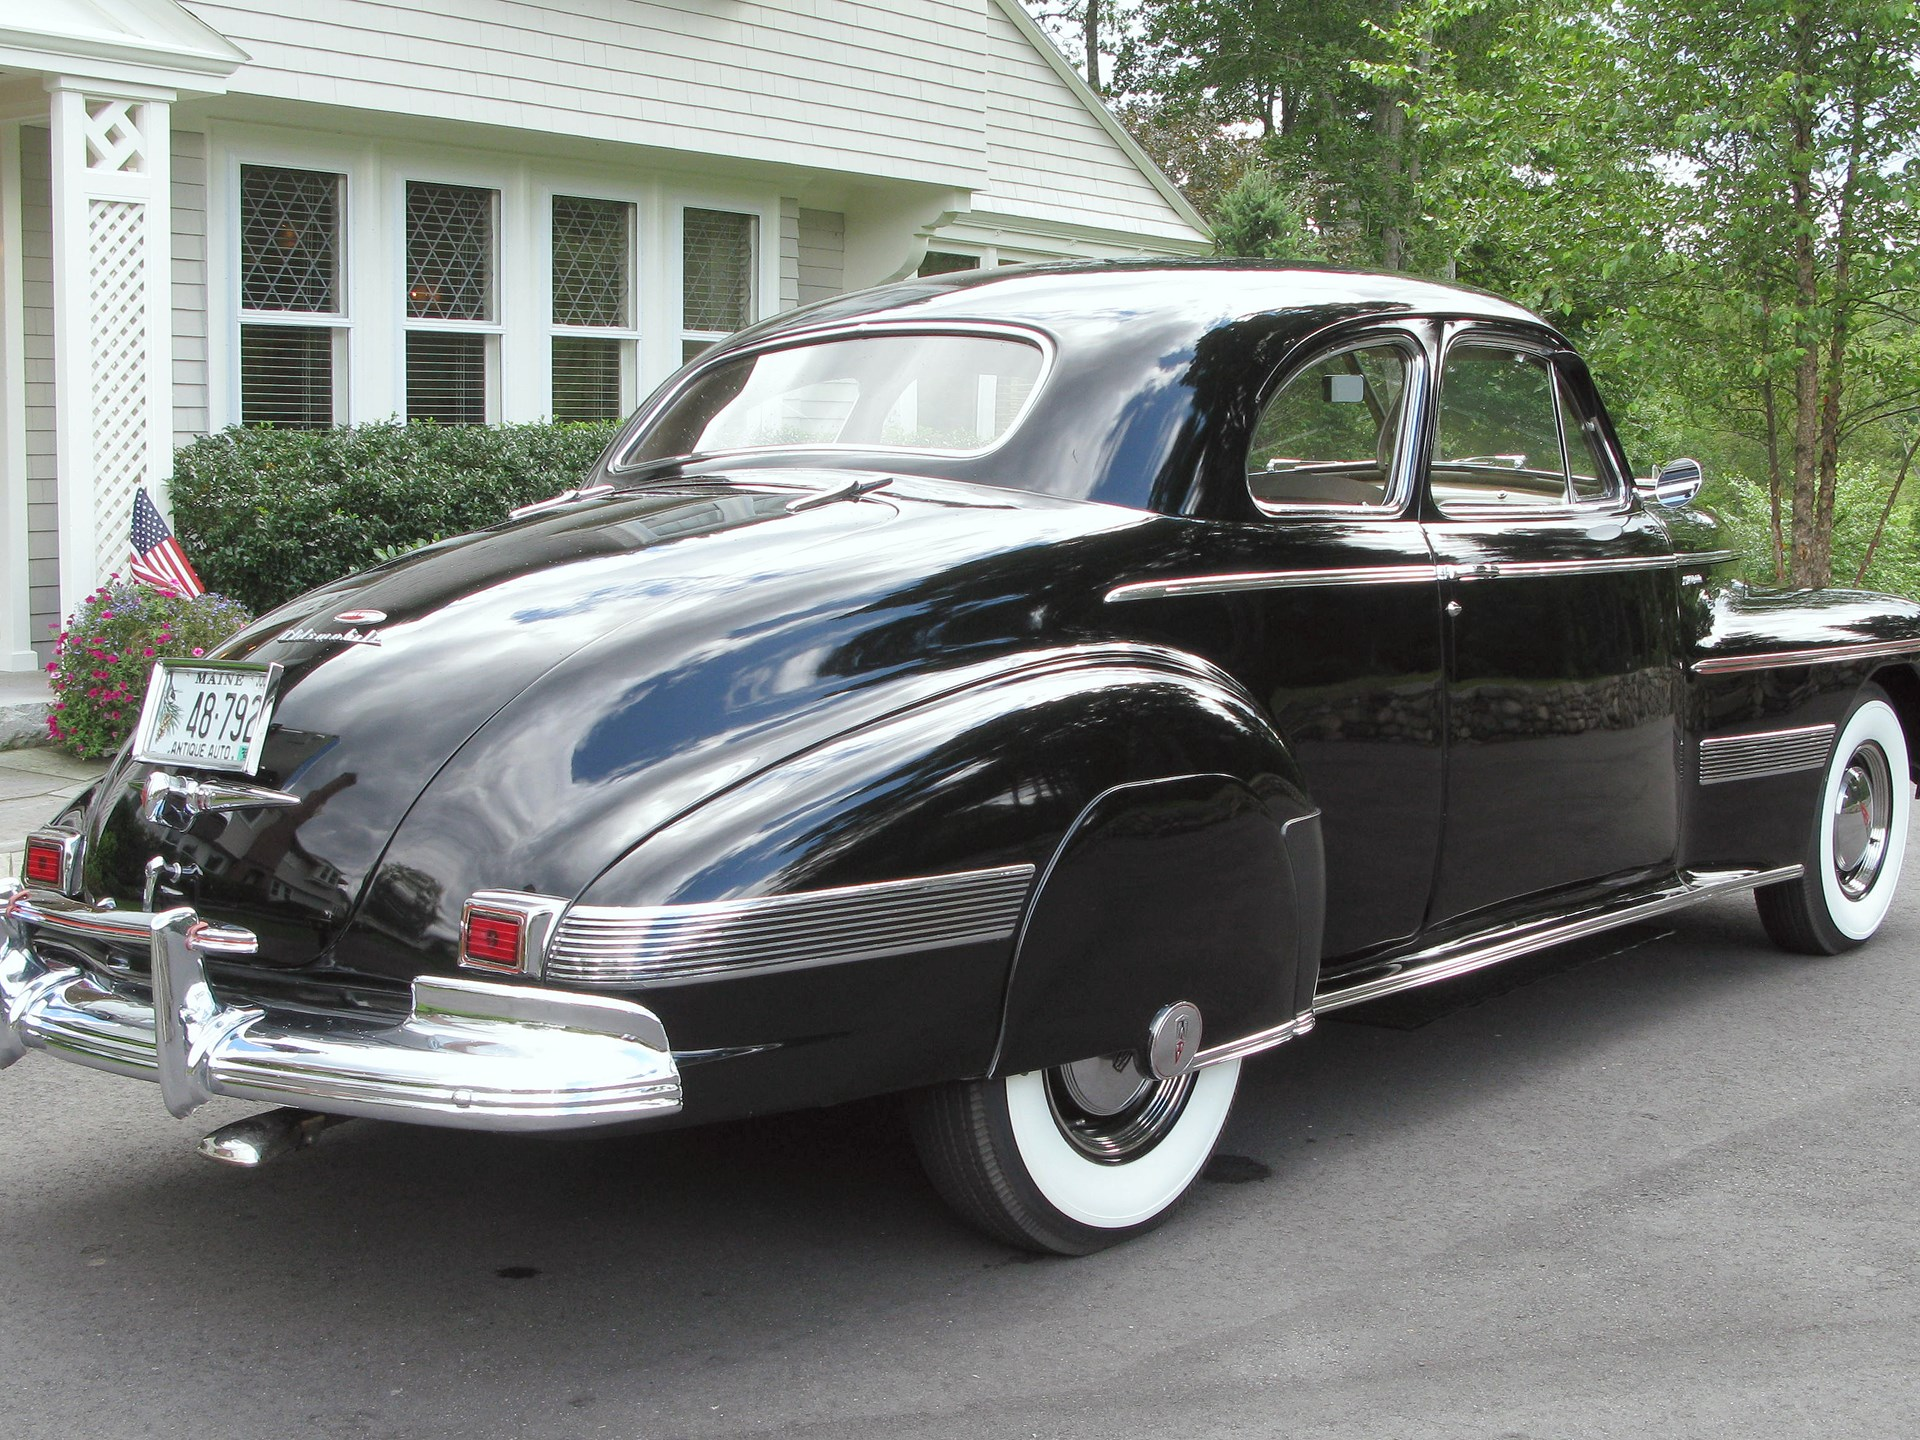 1941 Olds Coupe Oldsmobile Ninety Eight Rm Sothebys Series Club Hershey 1920x1440